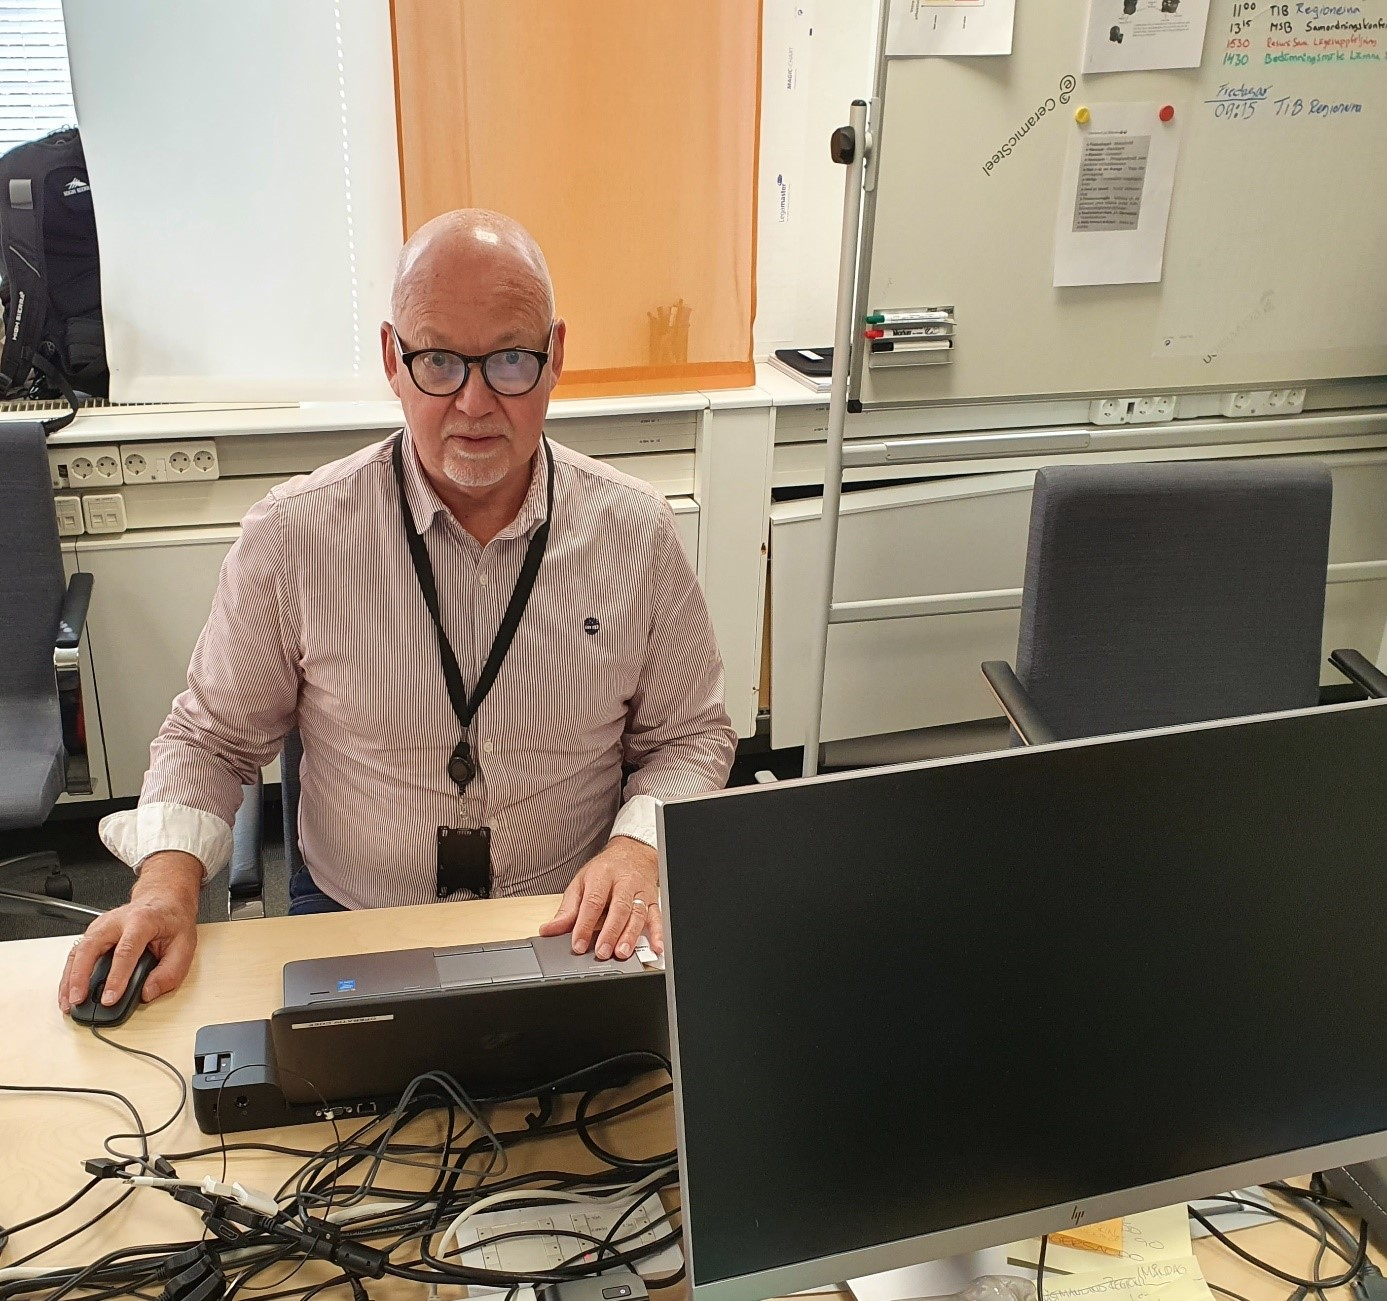 Ulf Cervinus in his work reinforcing the National Board of Health and Welfare as a resource mediator. Ulf has previously worked as operational staff in Sweden as well as abroad, including during the forest fires in Sweden in 2018.